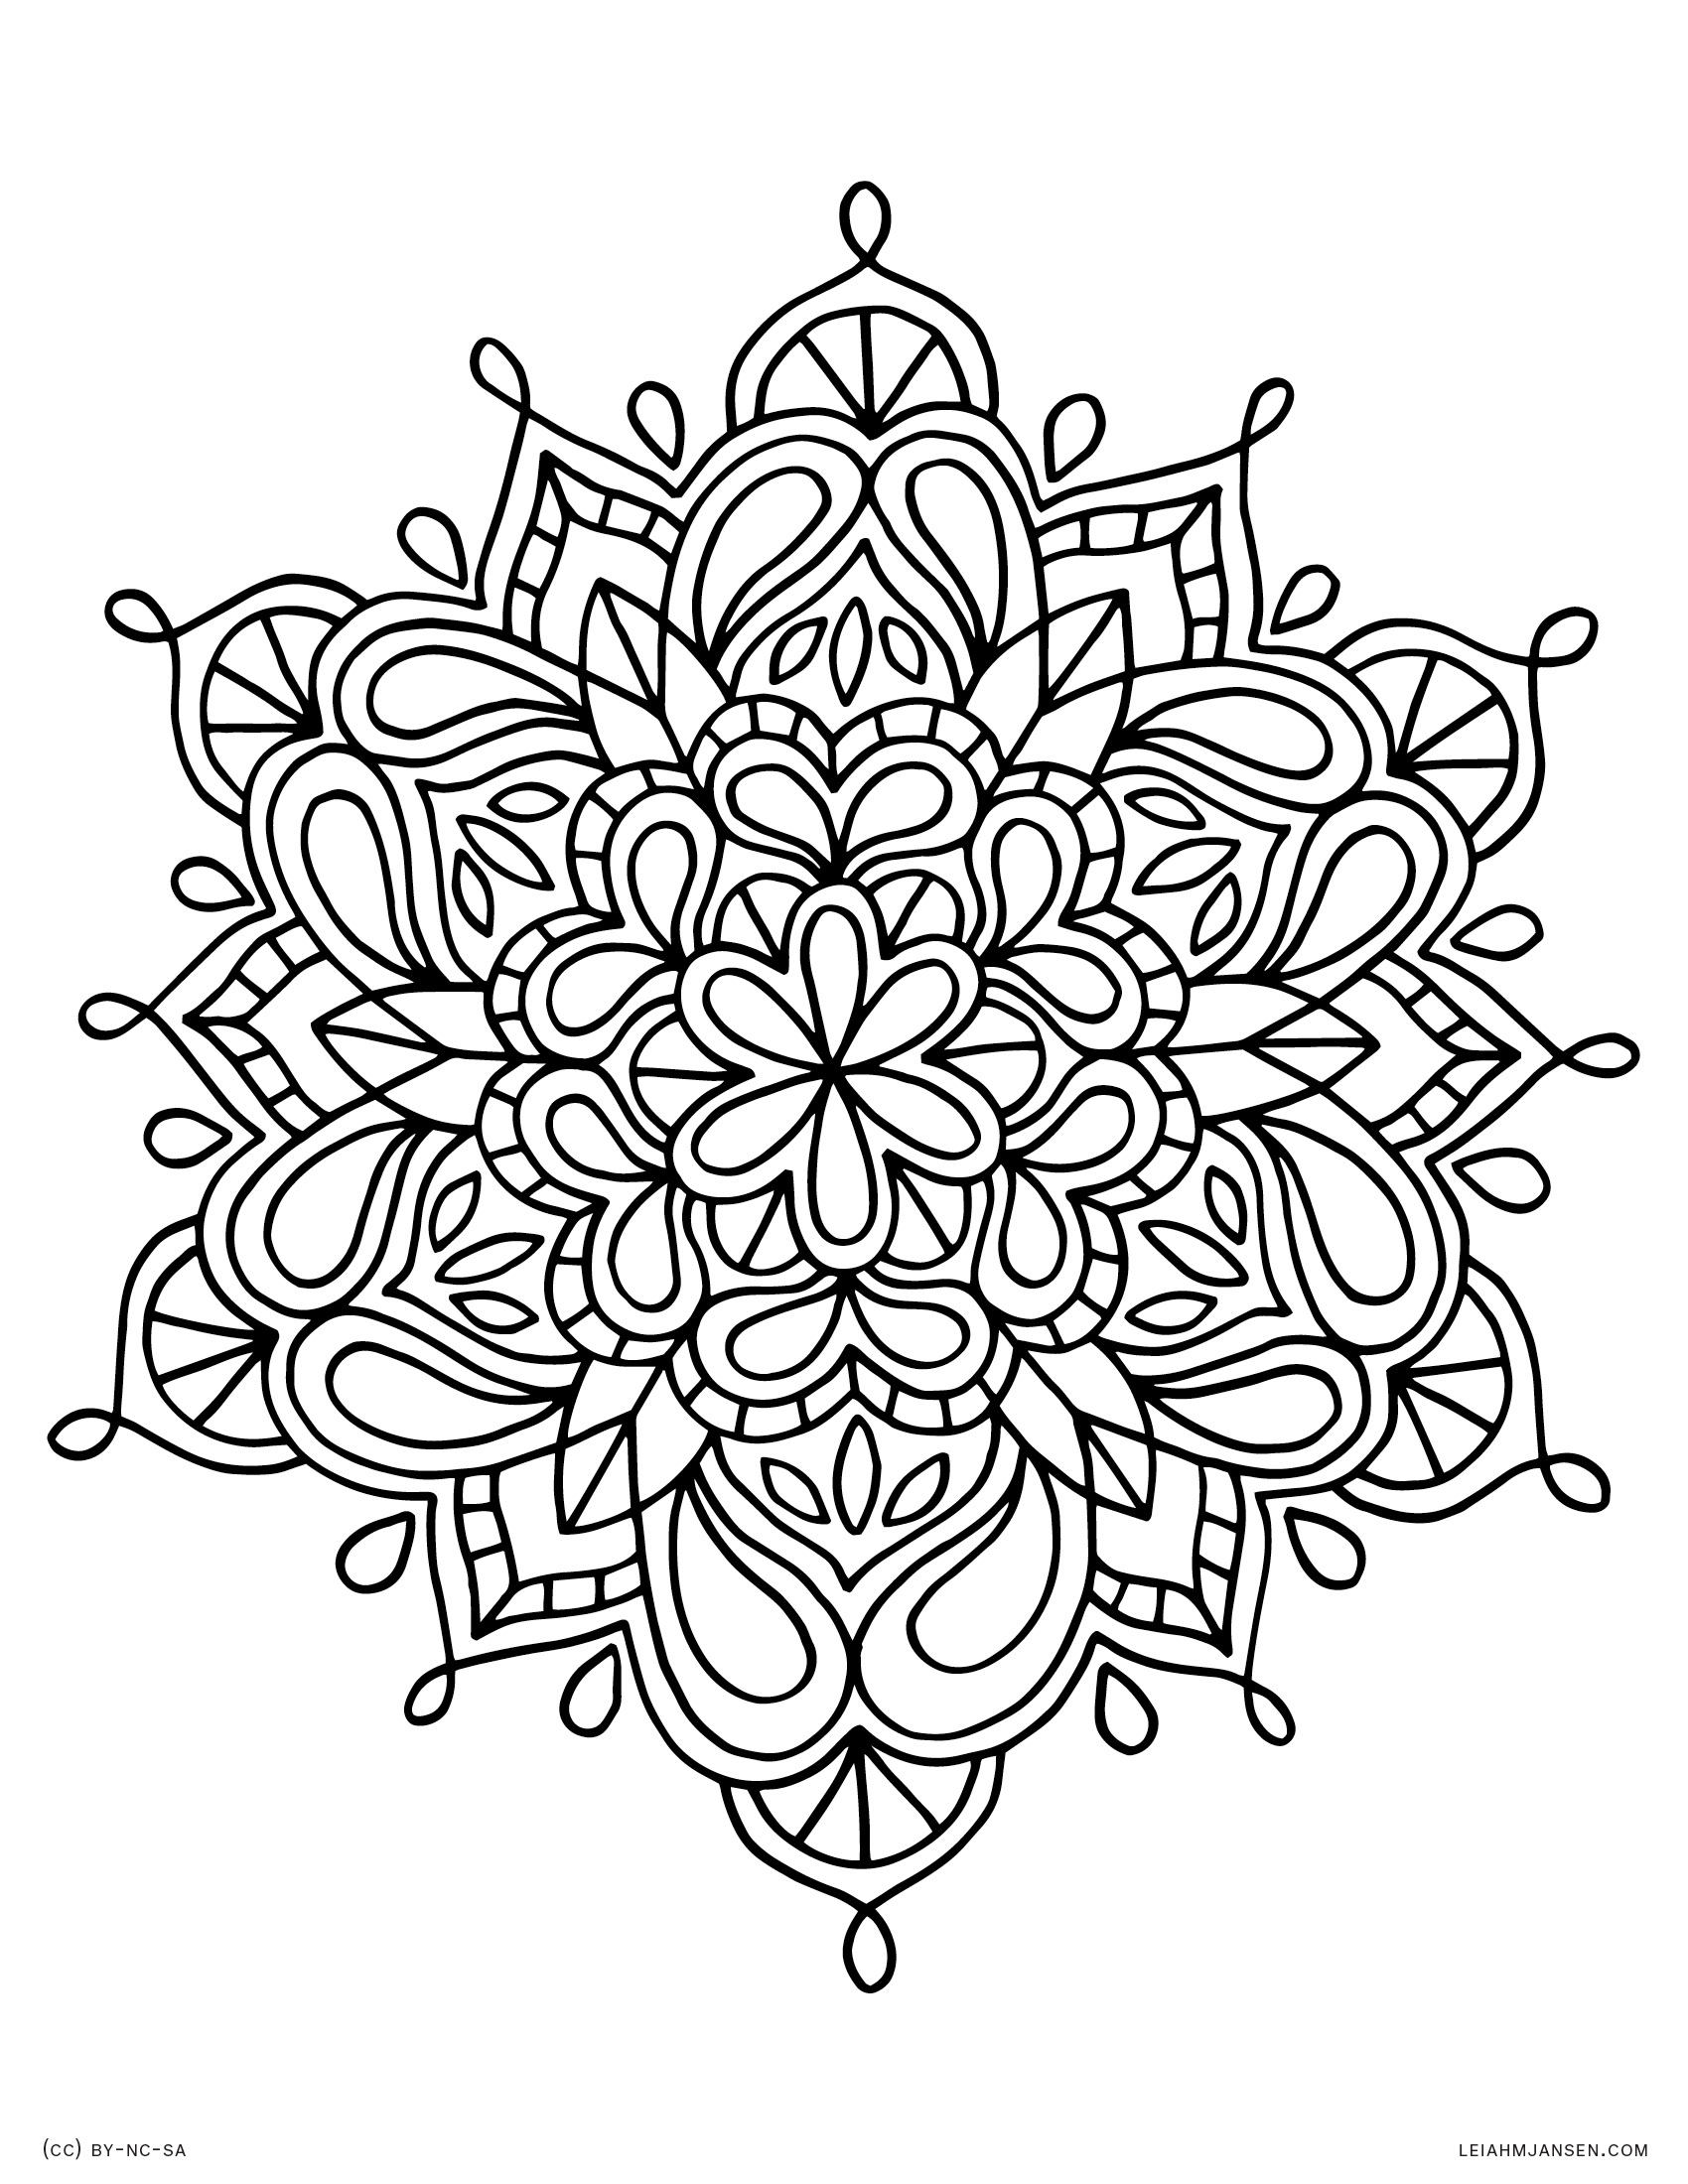 Organic mandala floral indian inspired mandala free printable coloring page for adults and